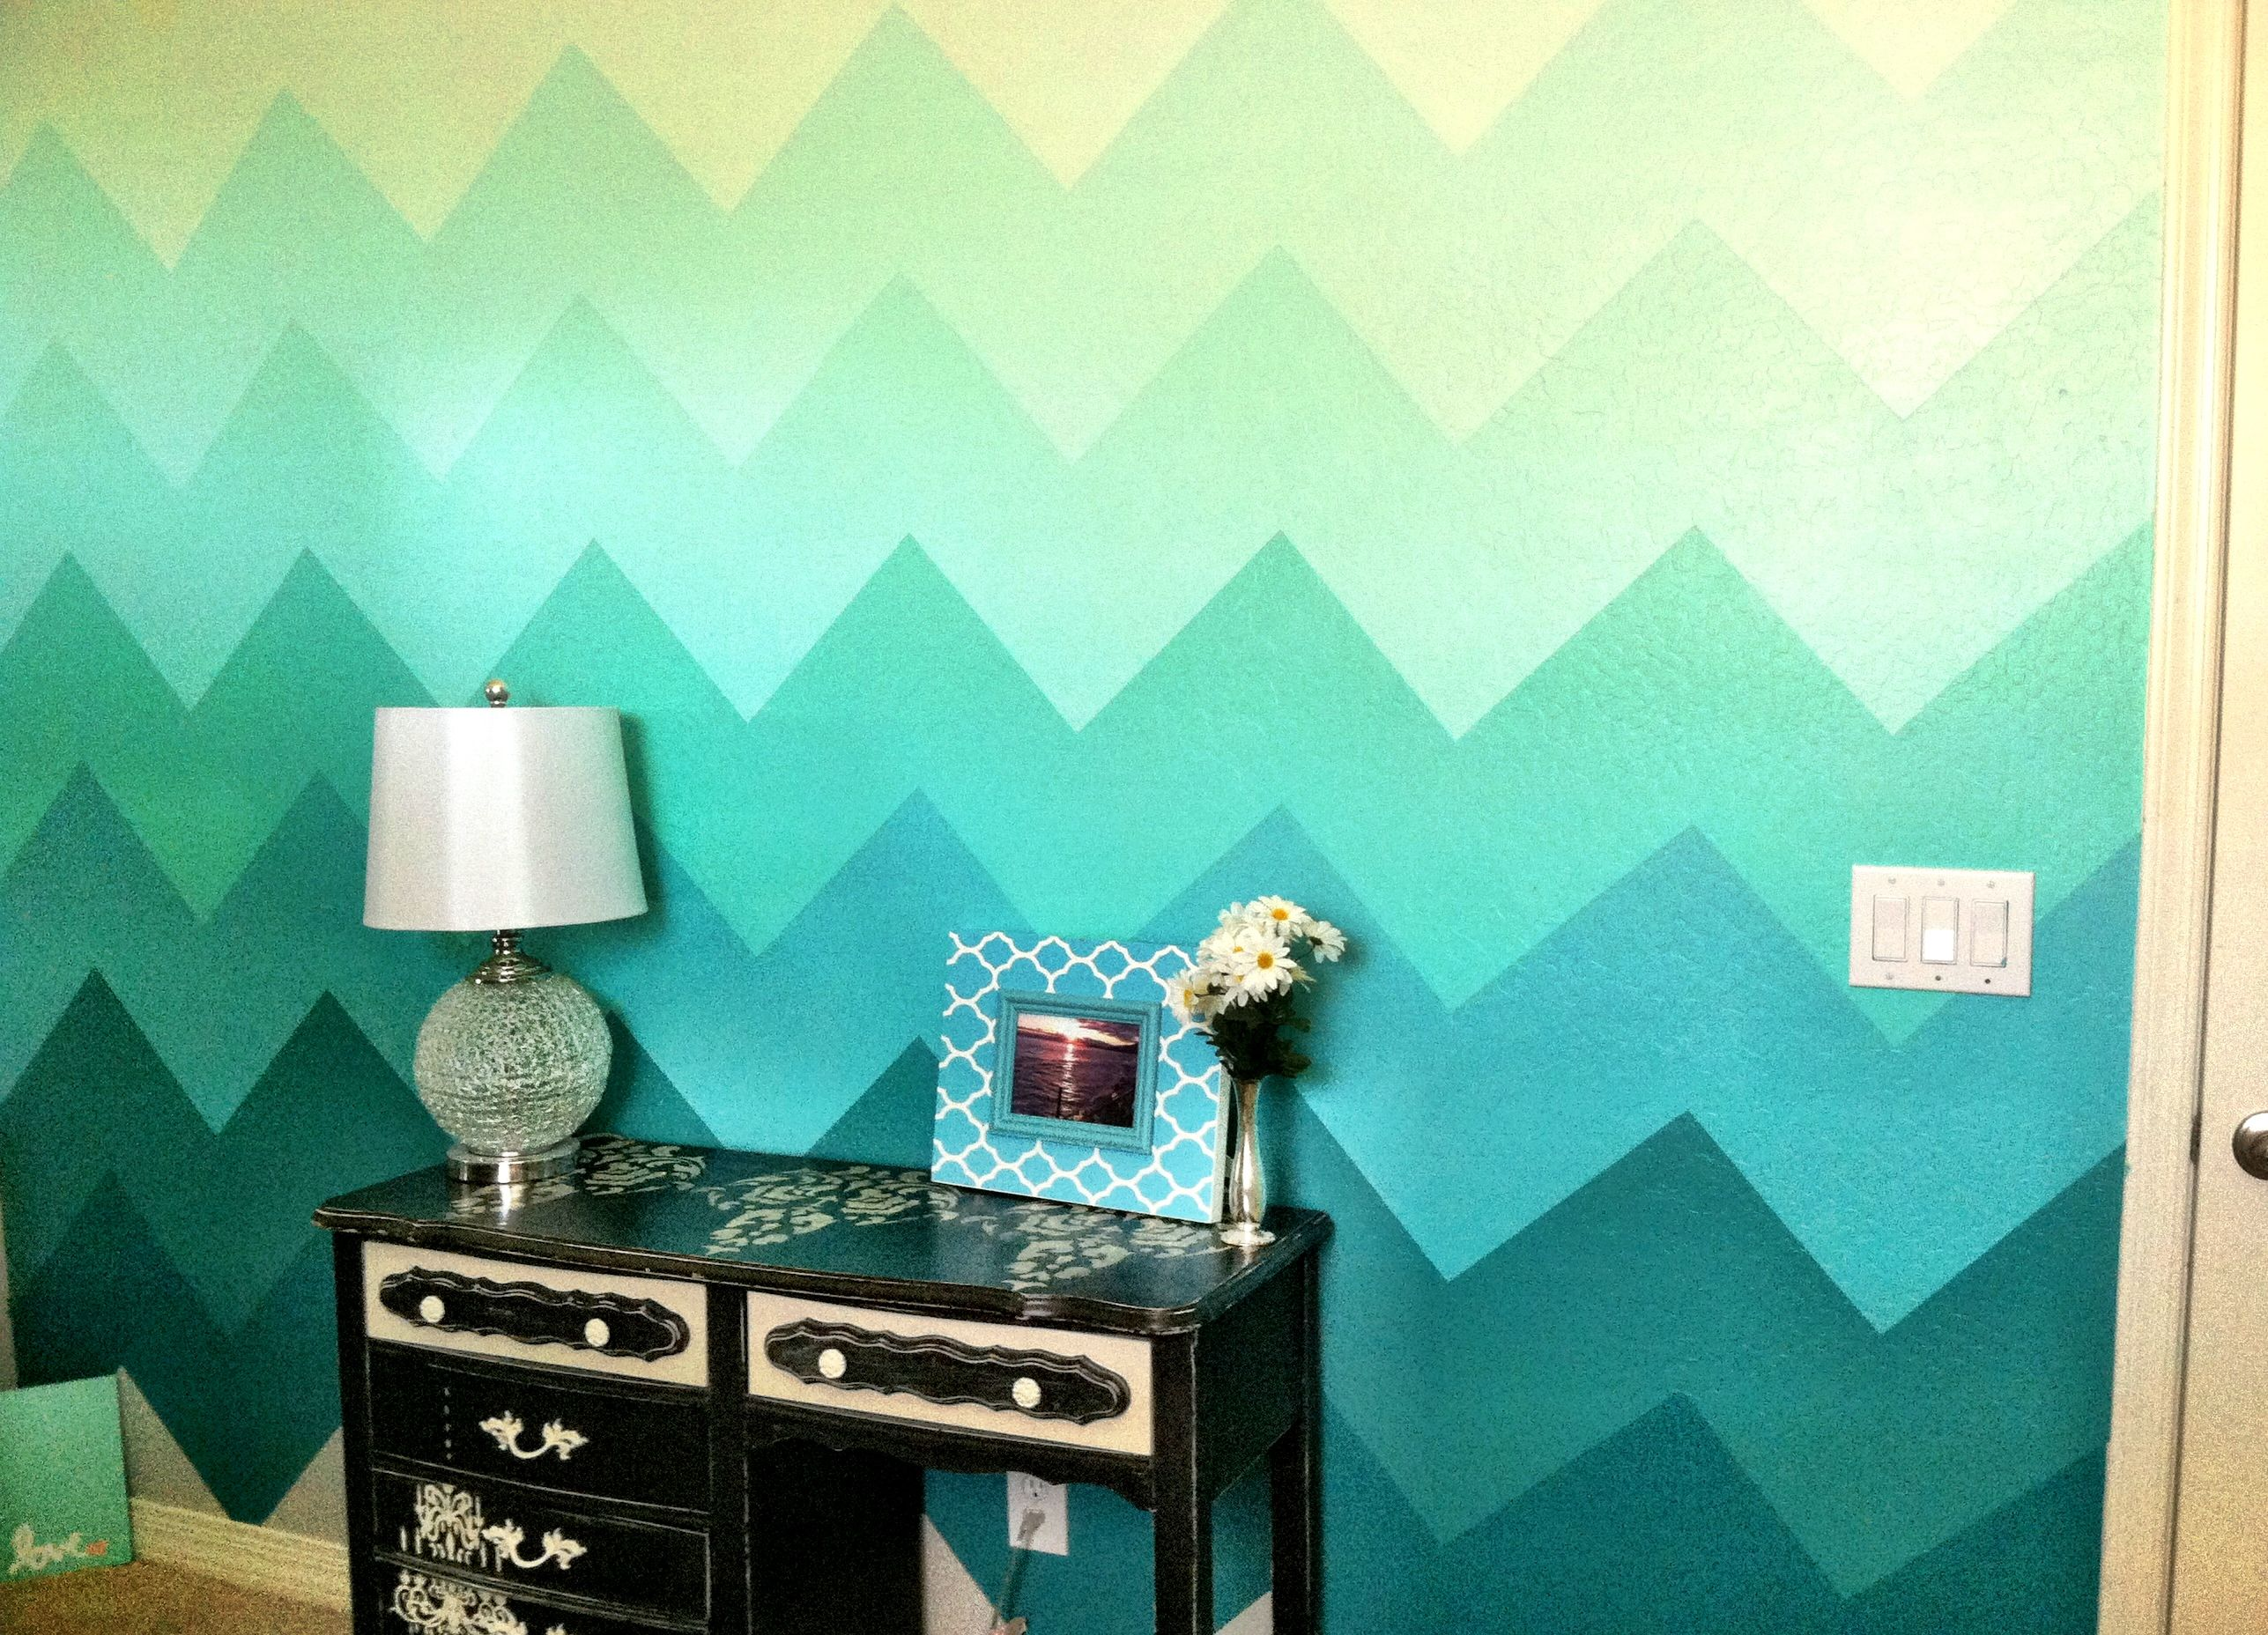 wall painted designs 31 days of color office makeover reveal half painted wallshalf cool painting ideas